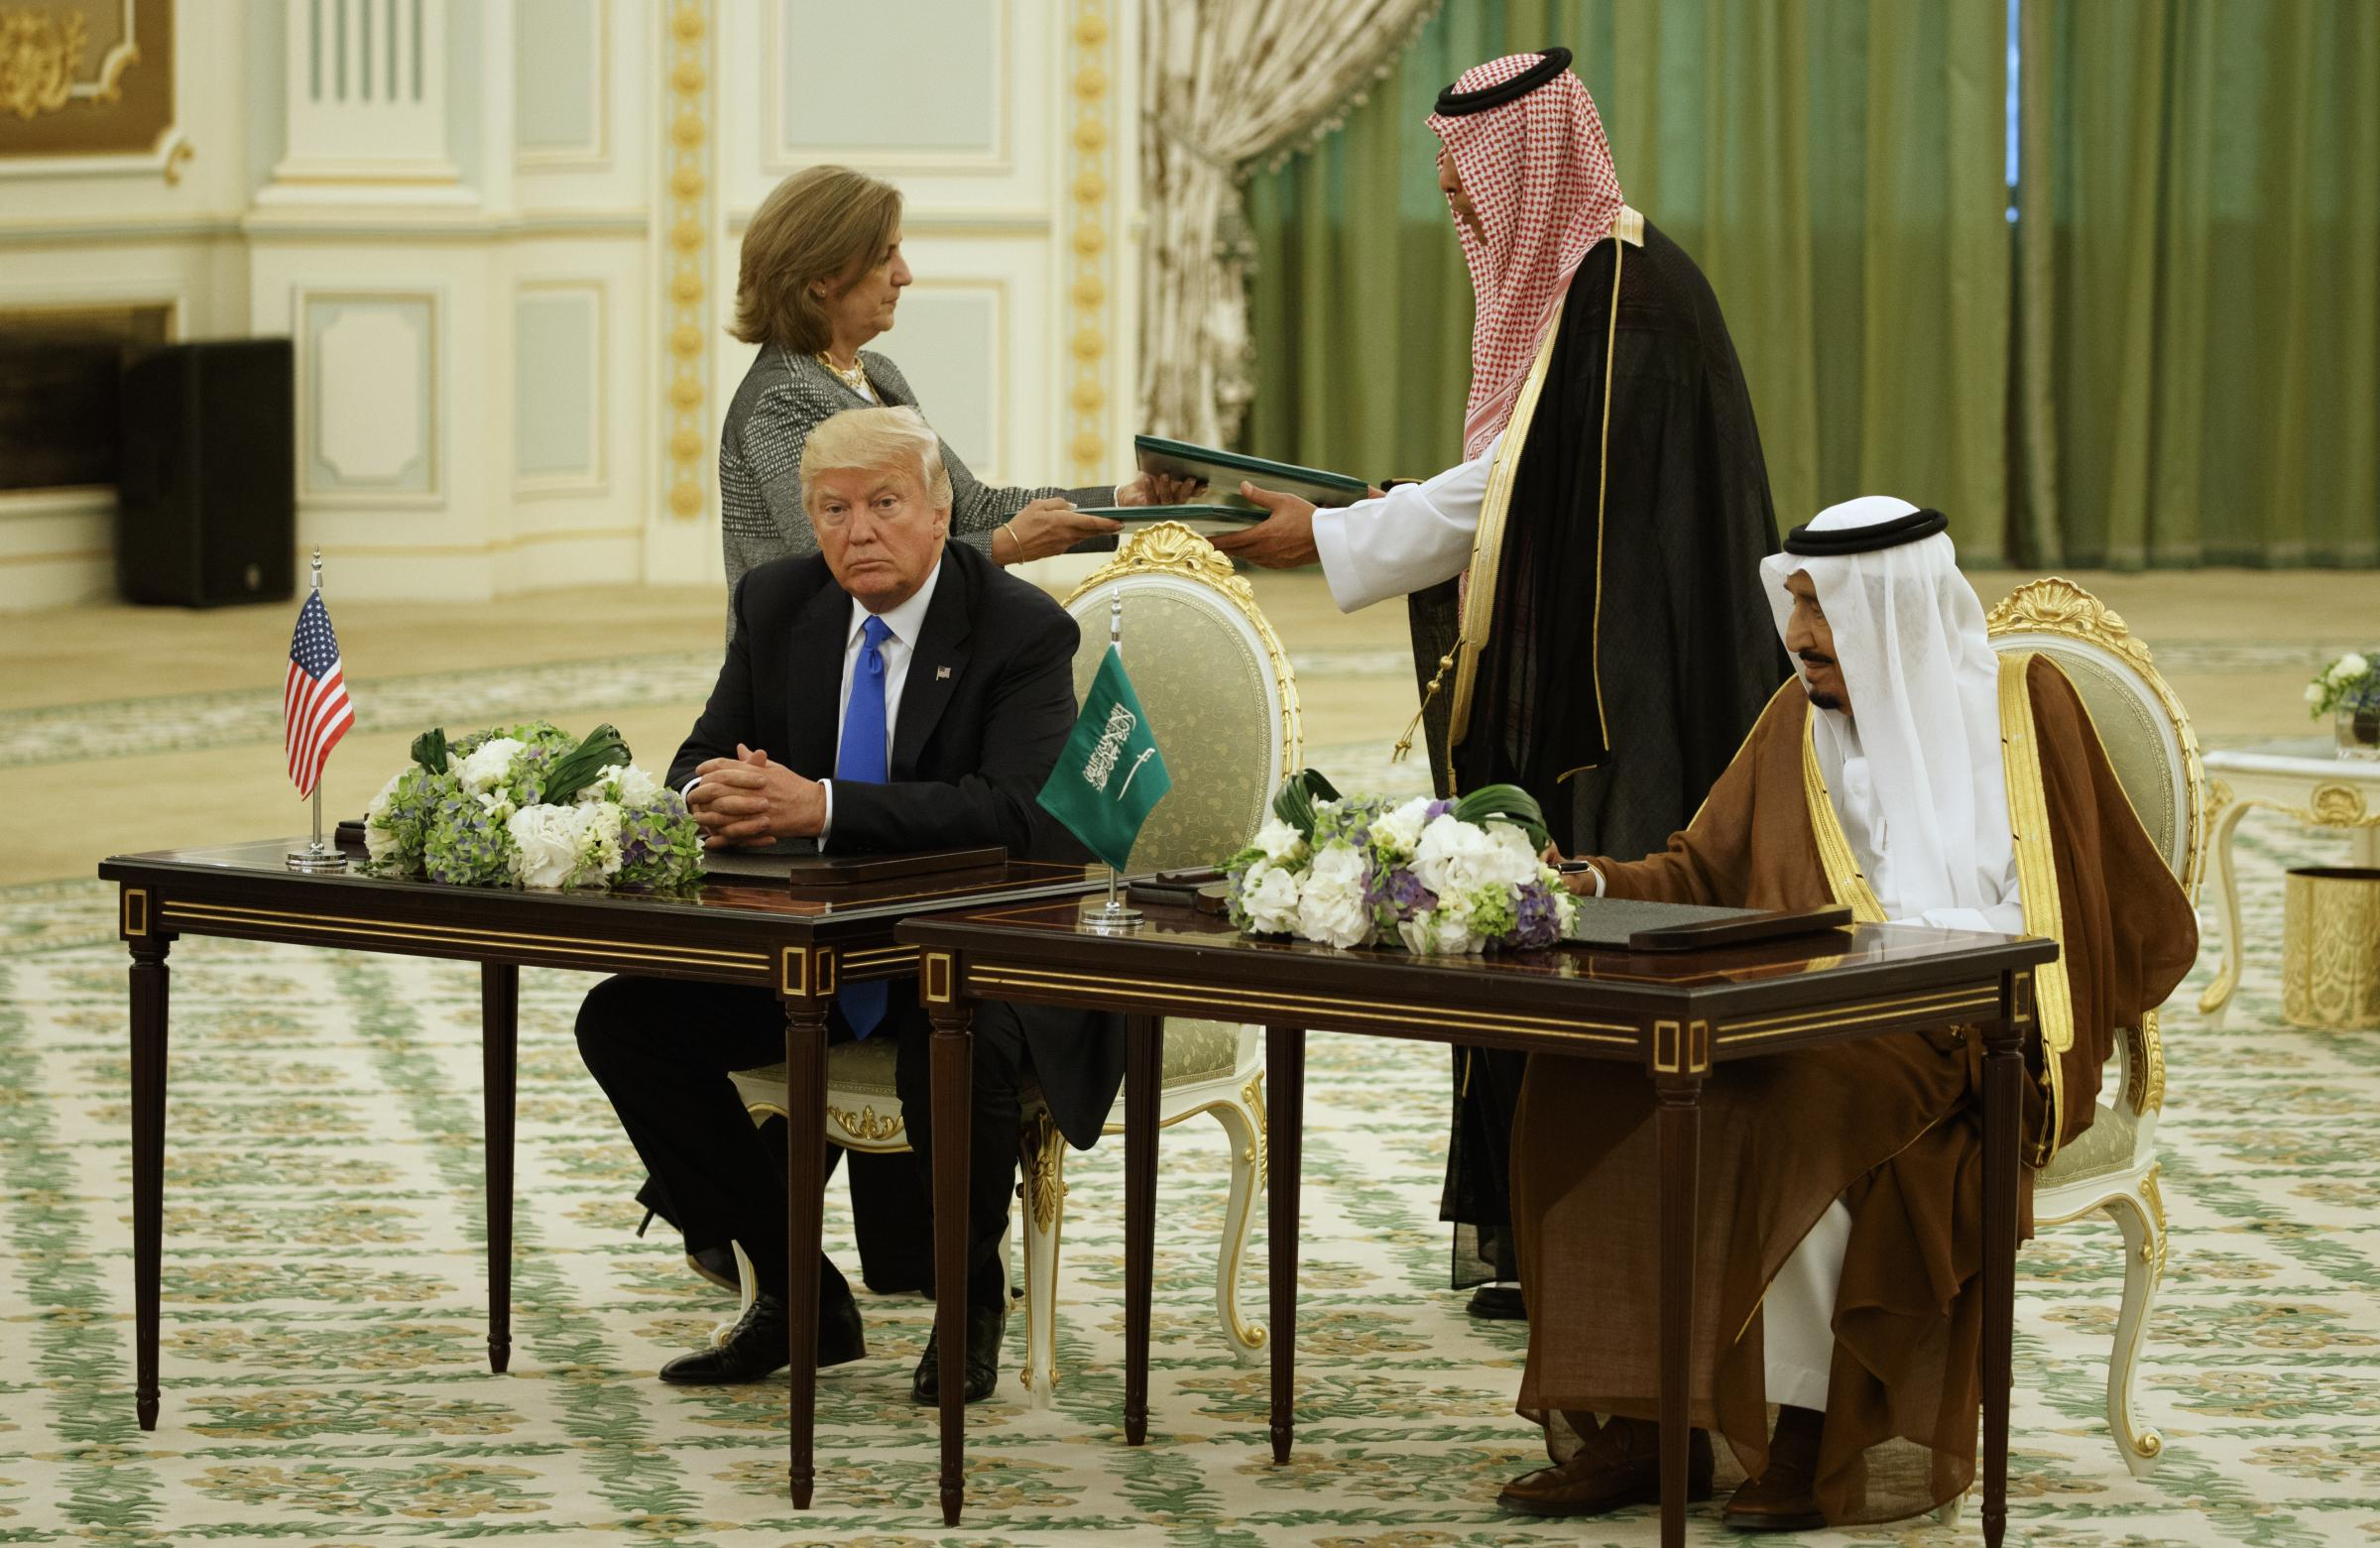 The truth about Trump's $110 billion Saudi arms deal